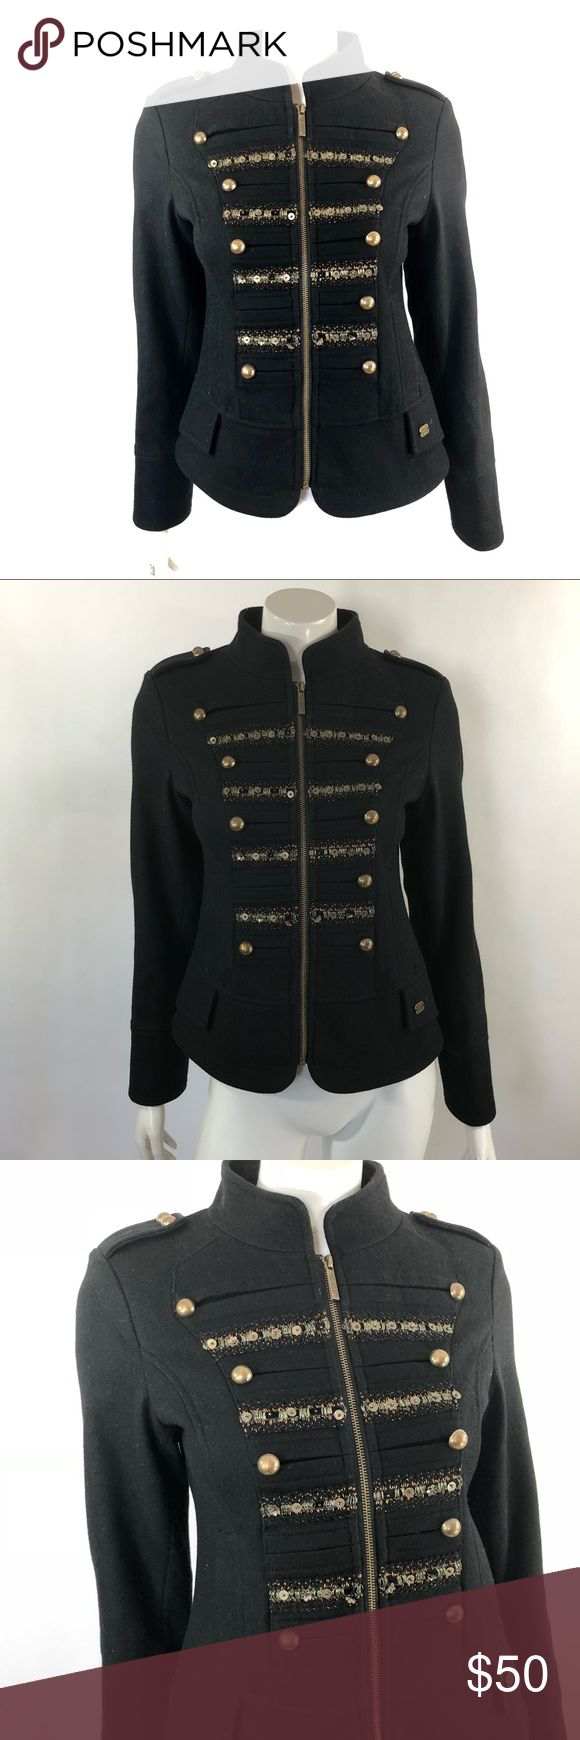 Steve Madden Military Style Jacket Sz Medium Black Steve Madden Womens Military Style Jacket Size Medium Black Wool Blend Coat. Measurements: (in inches) Underarm to underarm: 18 Length: 22 Sleeve:24 Good, gently used condition Steve Madden Jackets & Coats